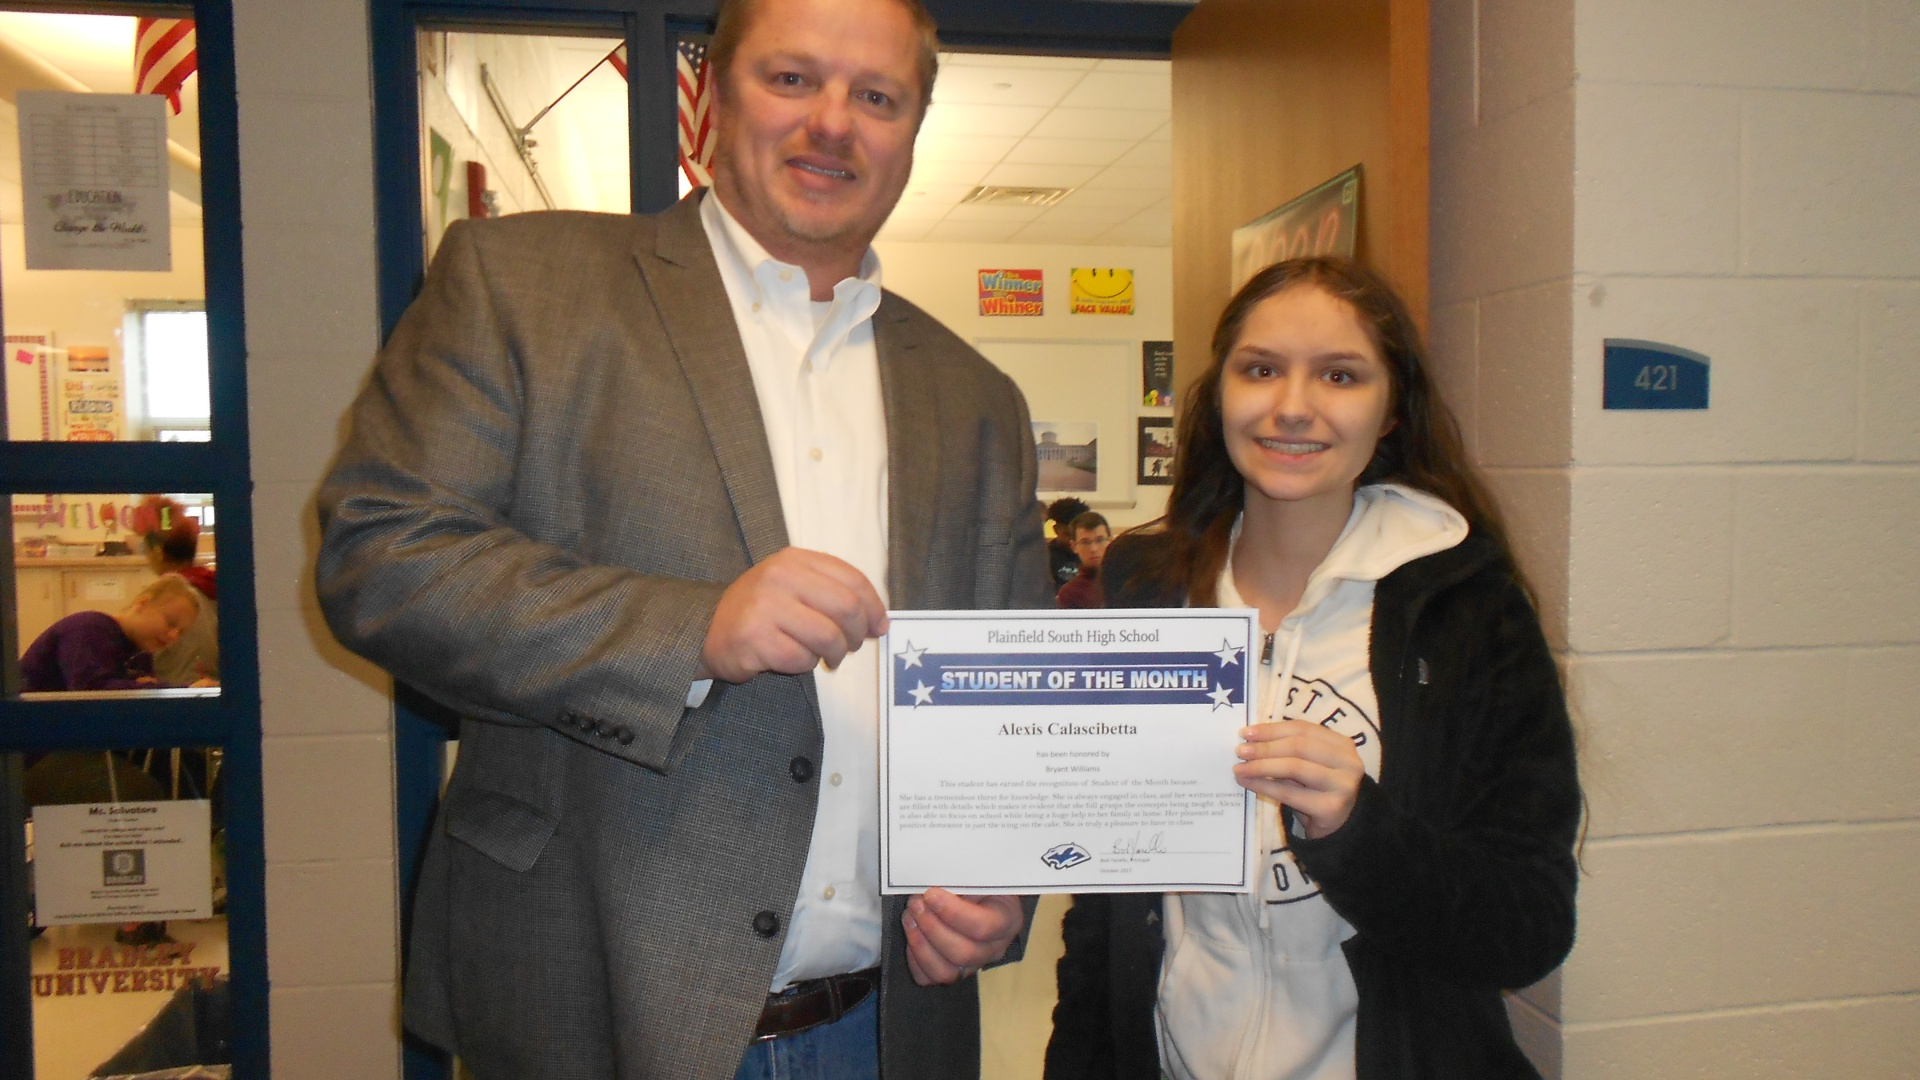 Student of the Month Alexis Calascibetta